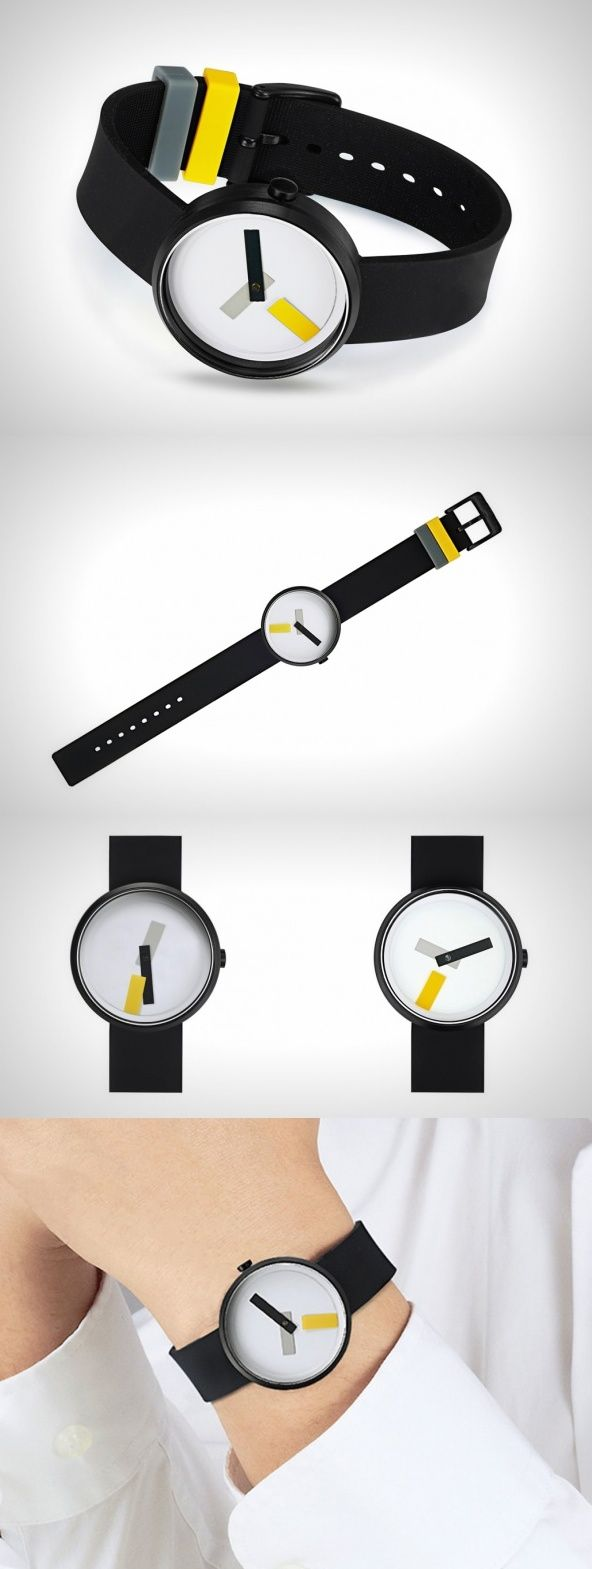 The Suprematism watch stems from the Suprematist movement propagated by Russian artist Kazimir Malevich. With the use of strictly geometric shapes and vivid color schemes, the artist would bring the canvas alive.